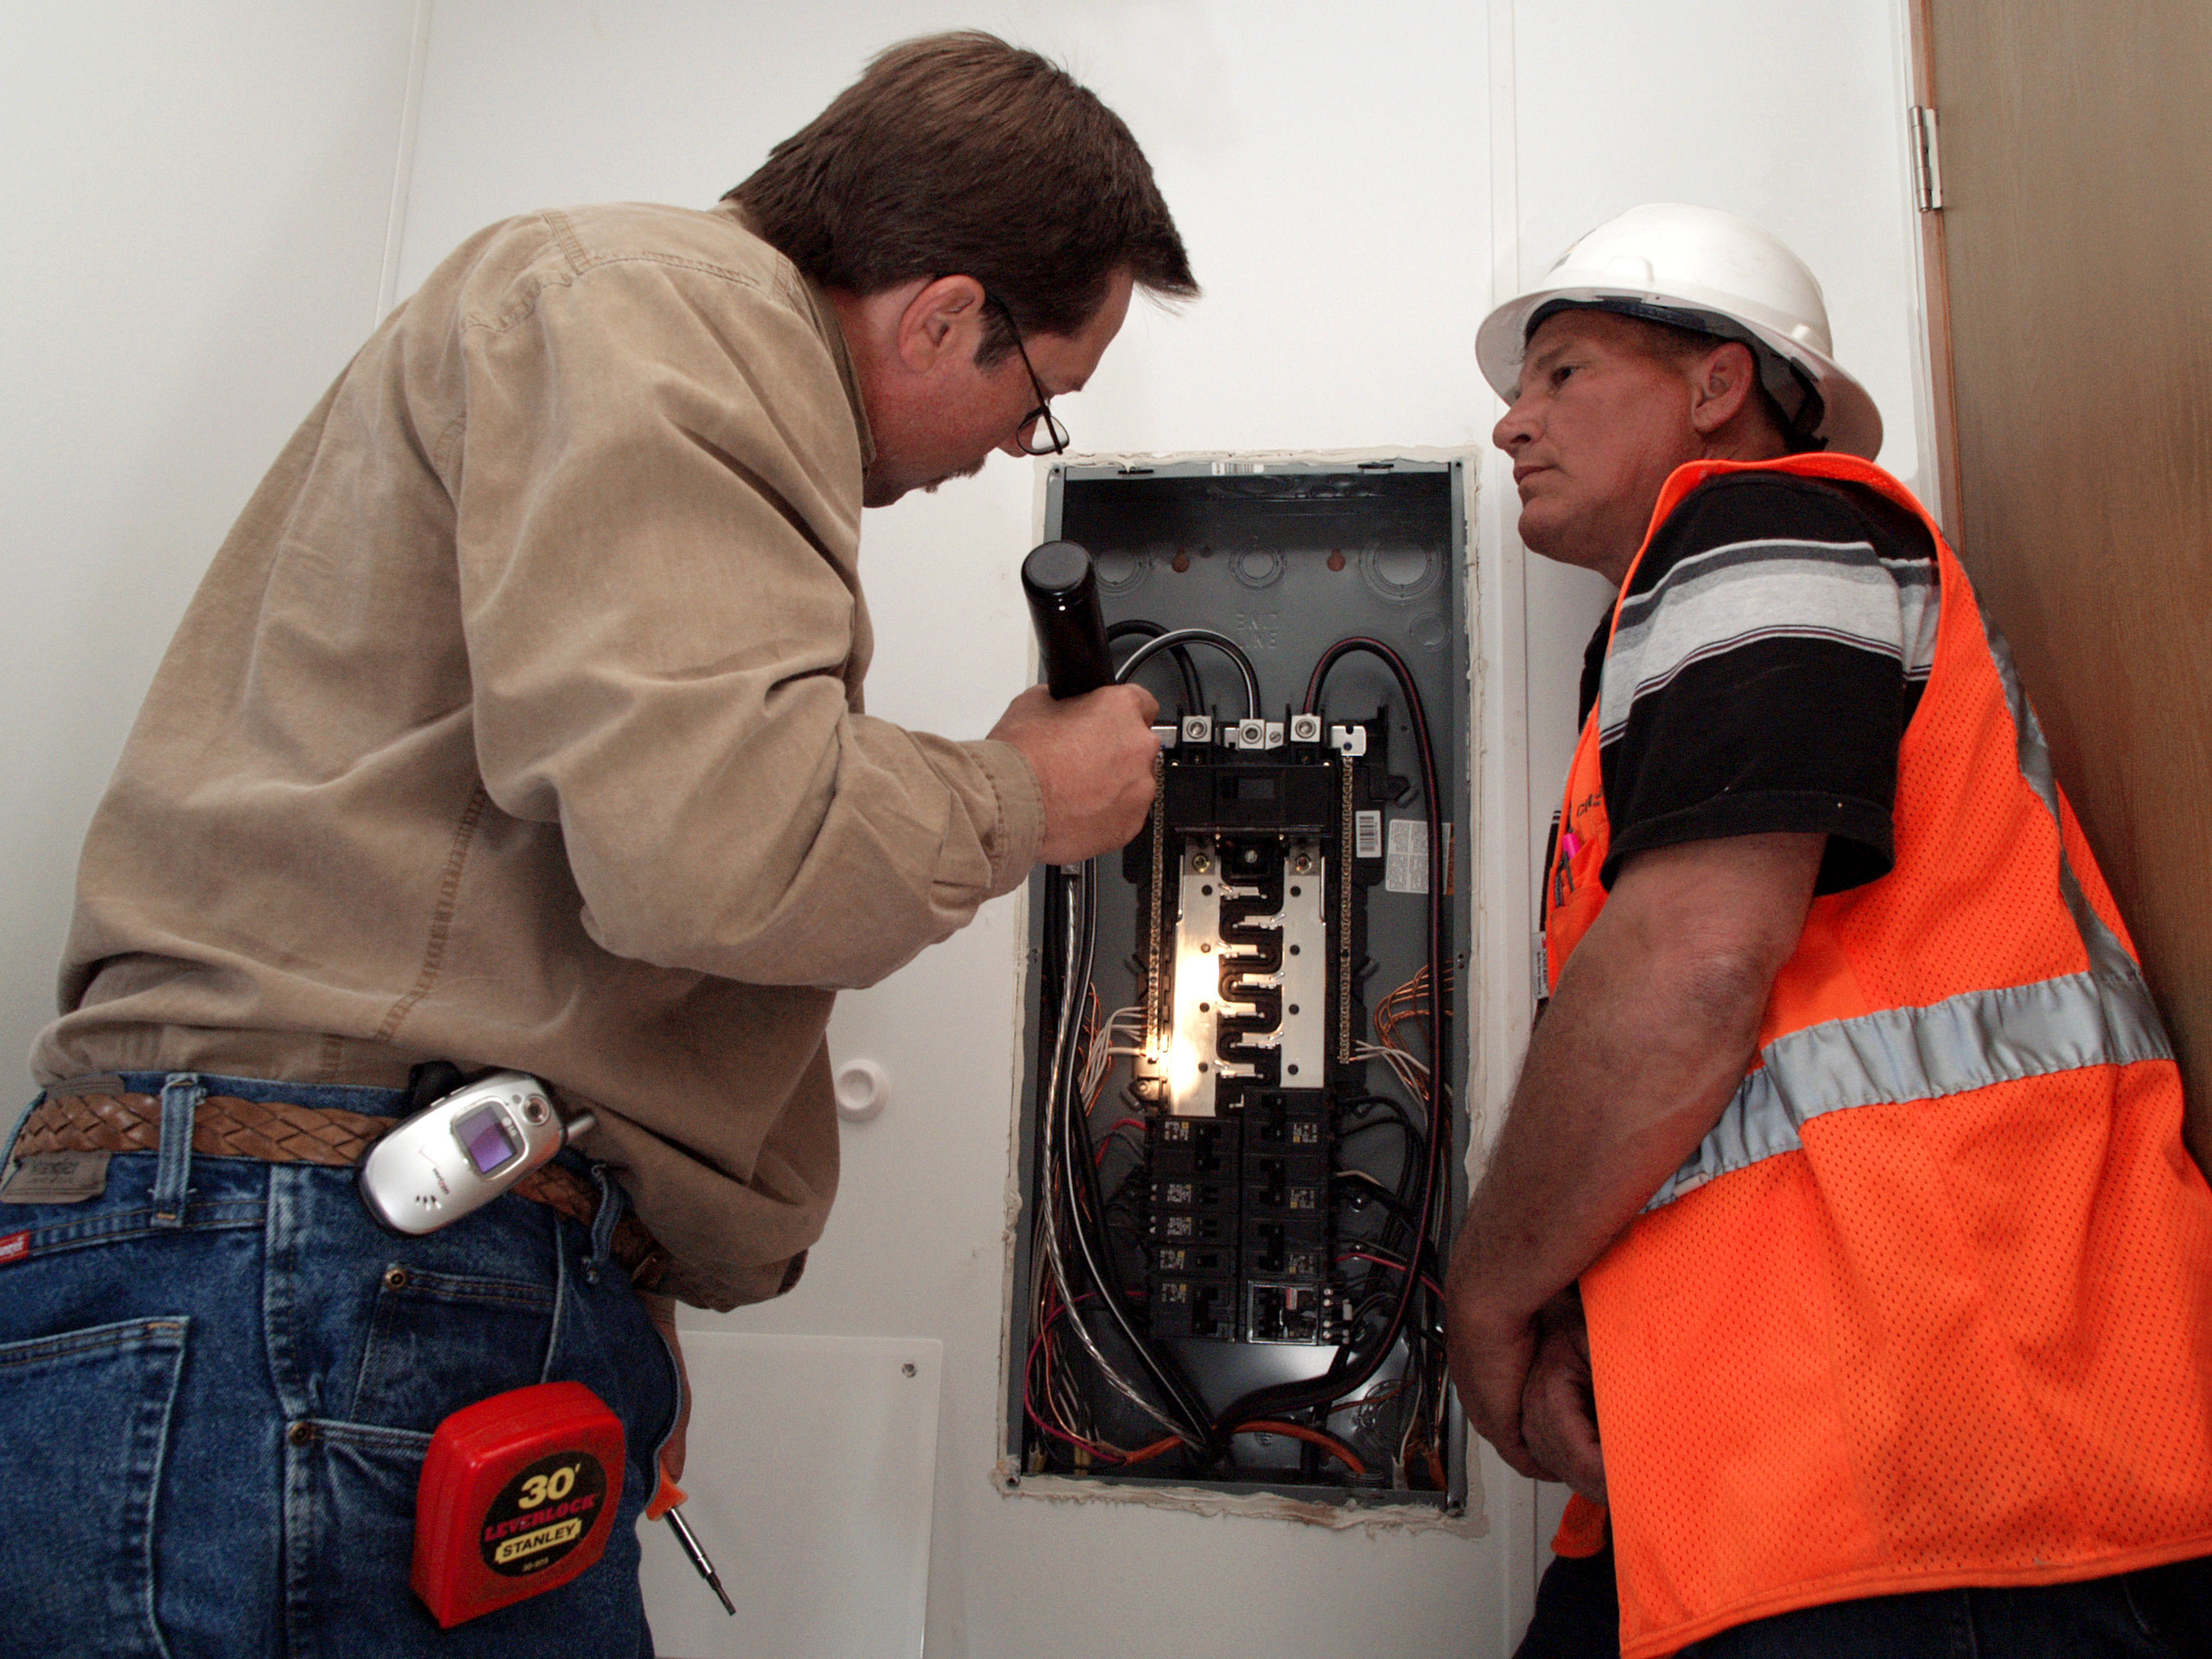 Occupational Profile: Home Inspector